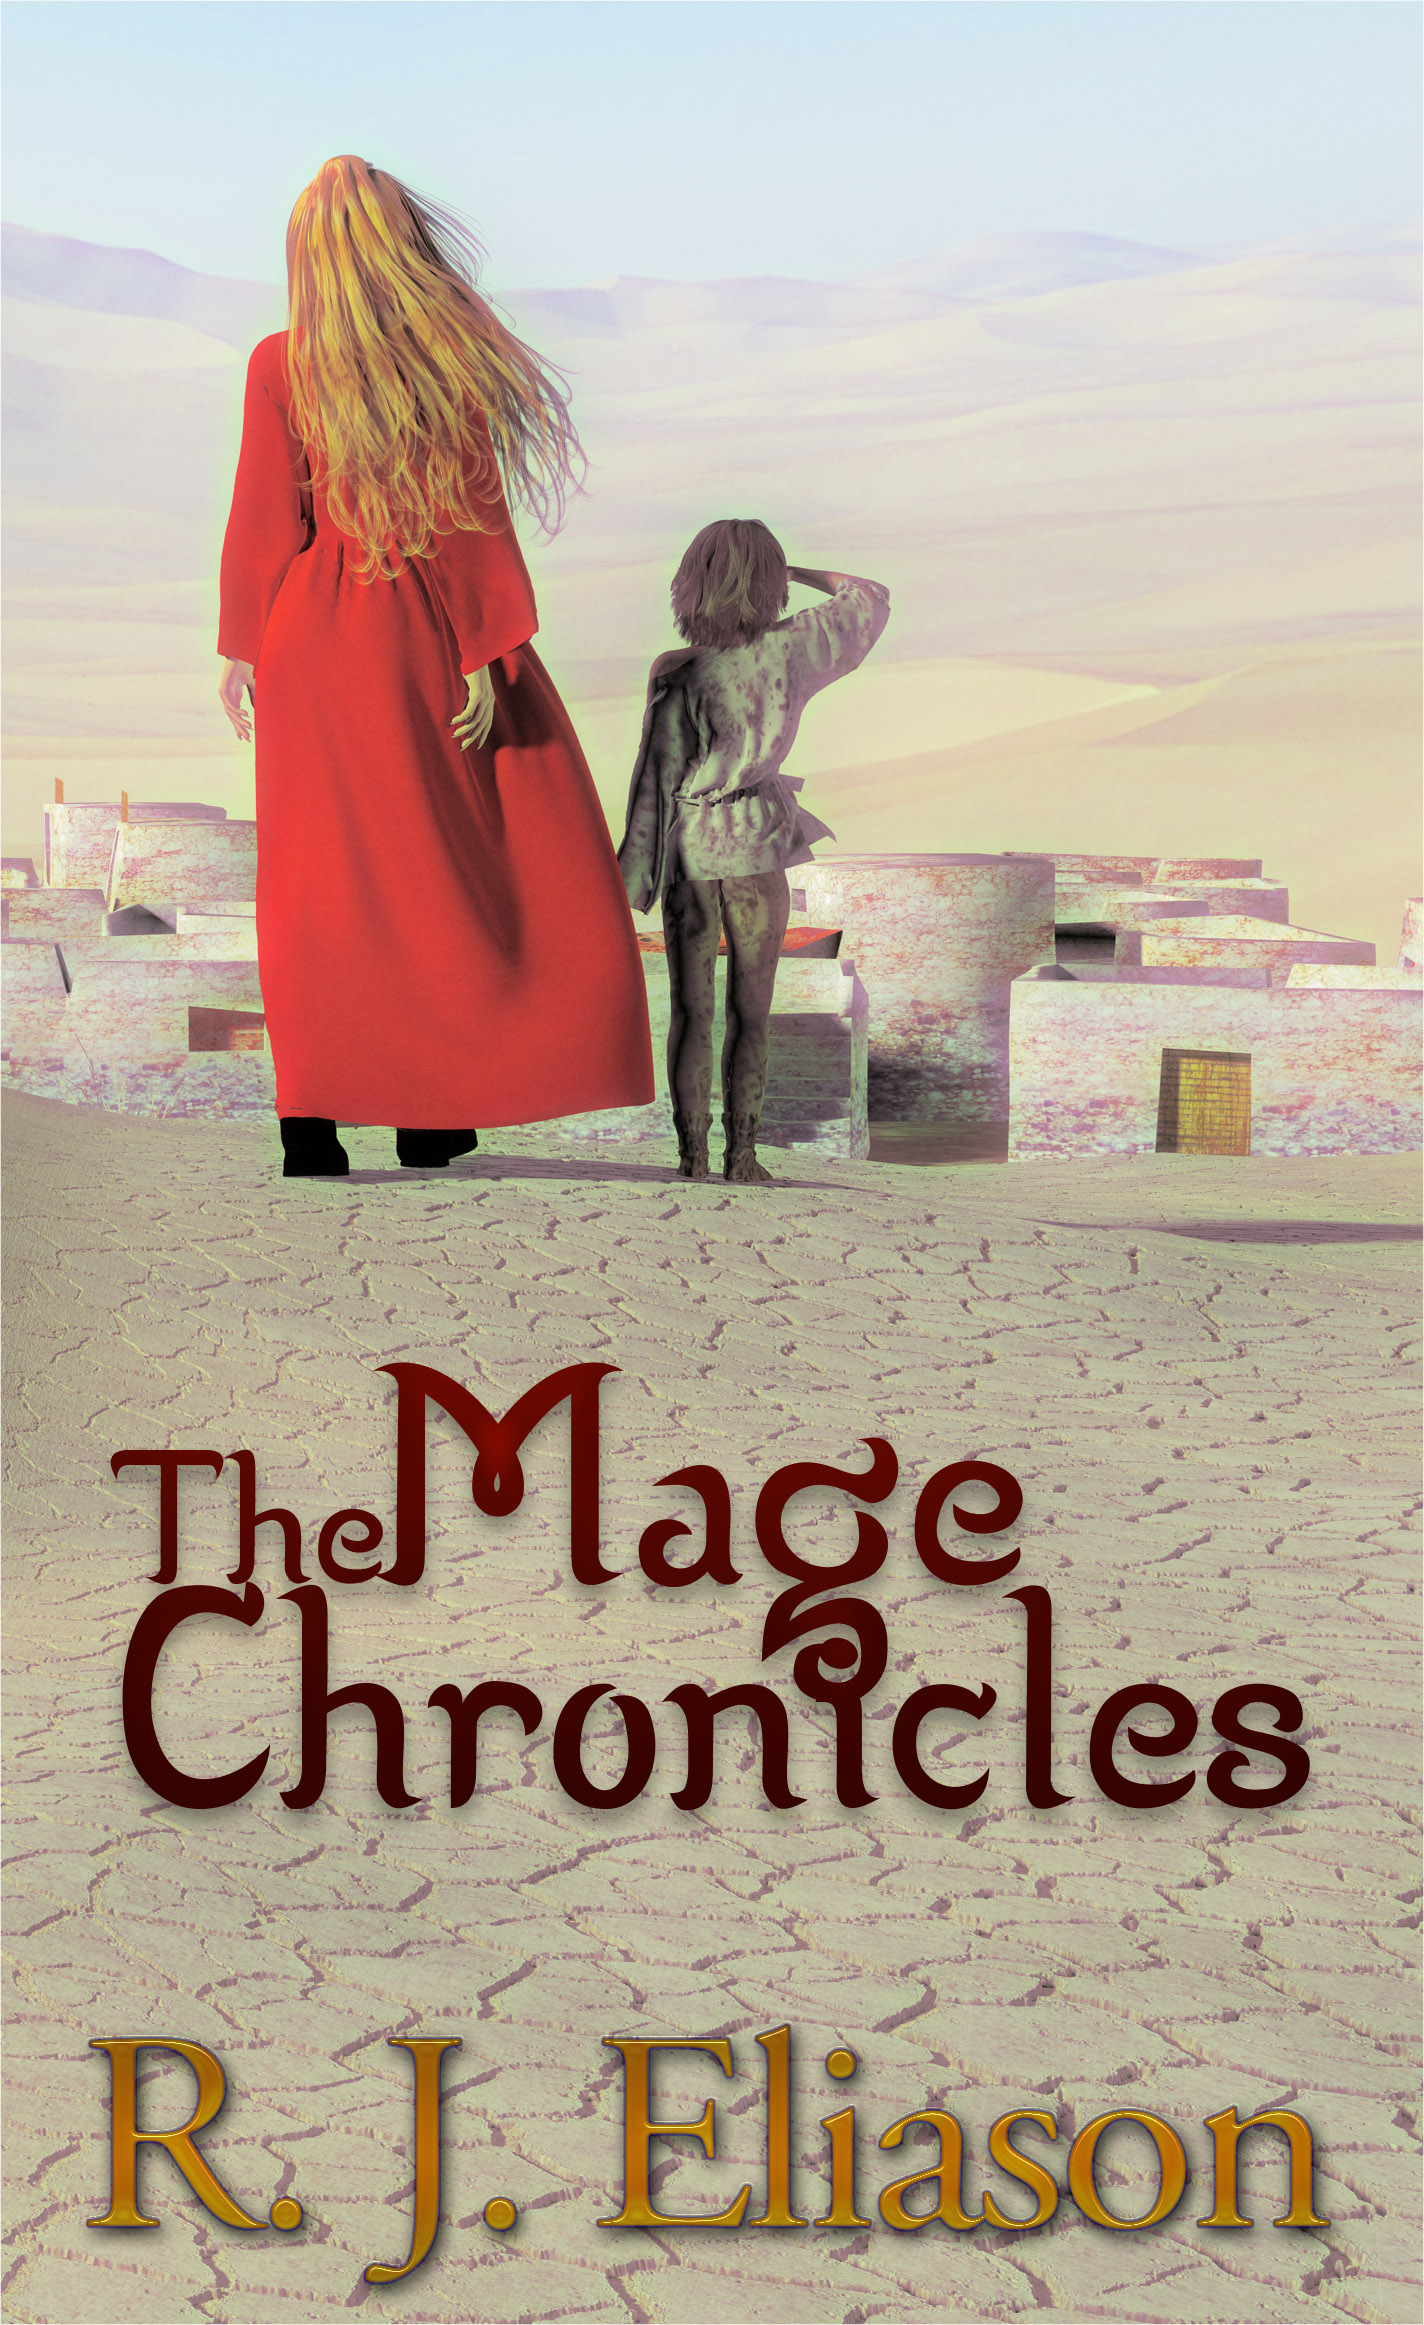 Mage Chronicles - Kindle